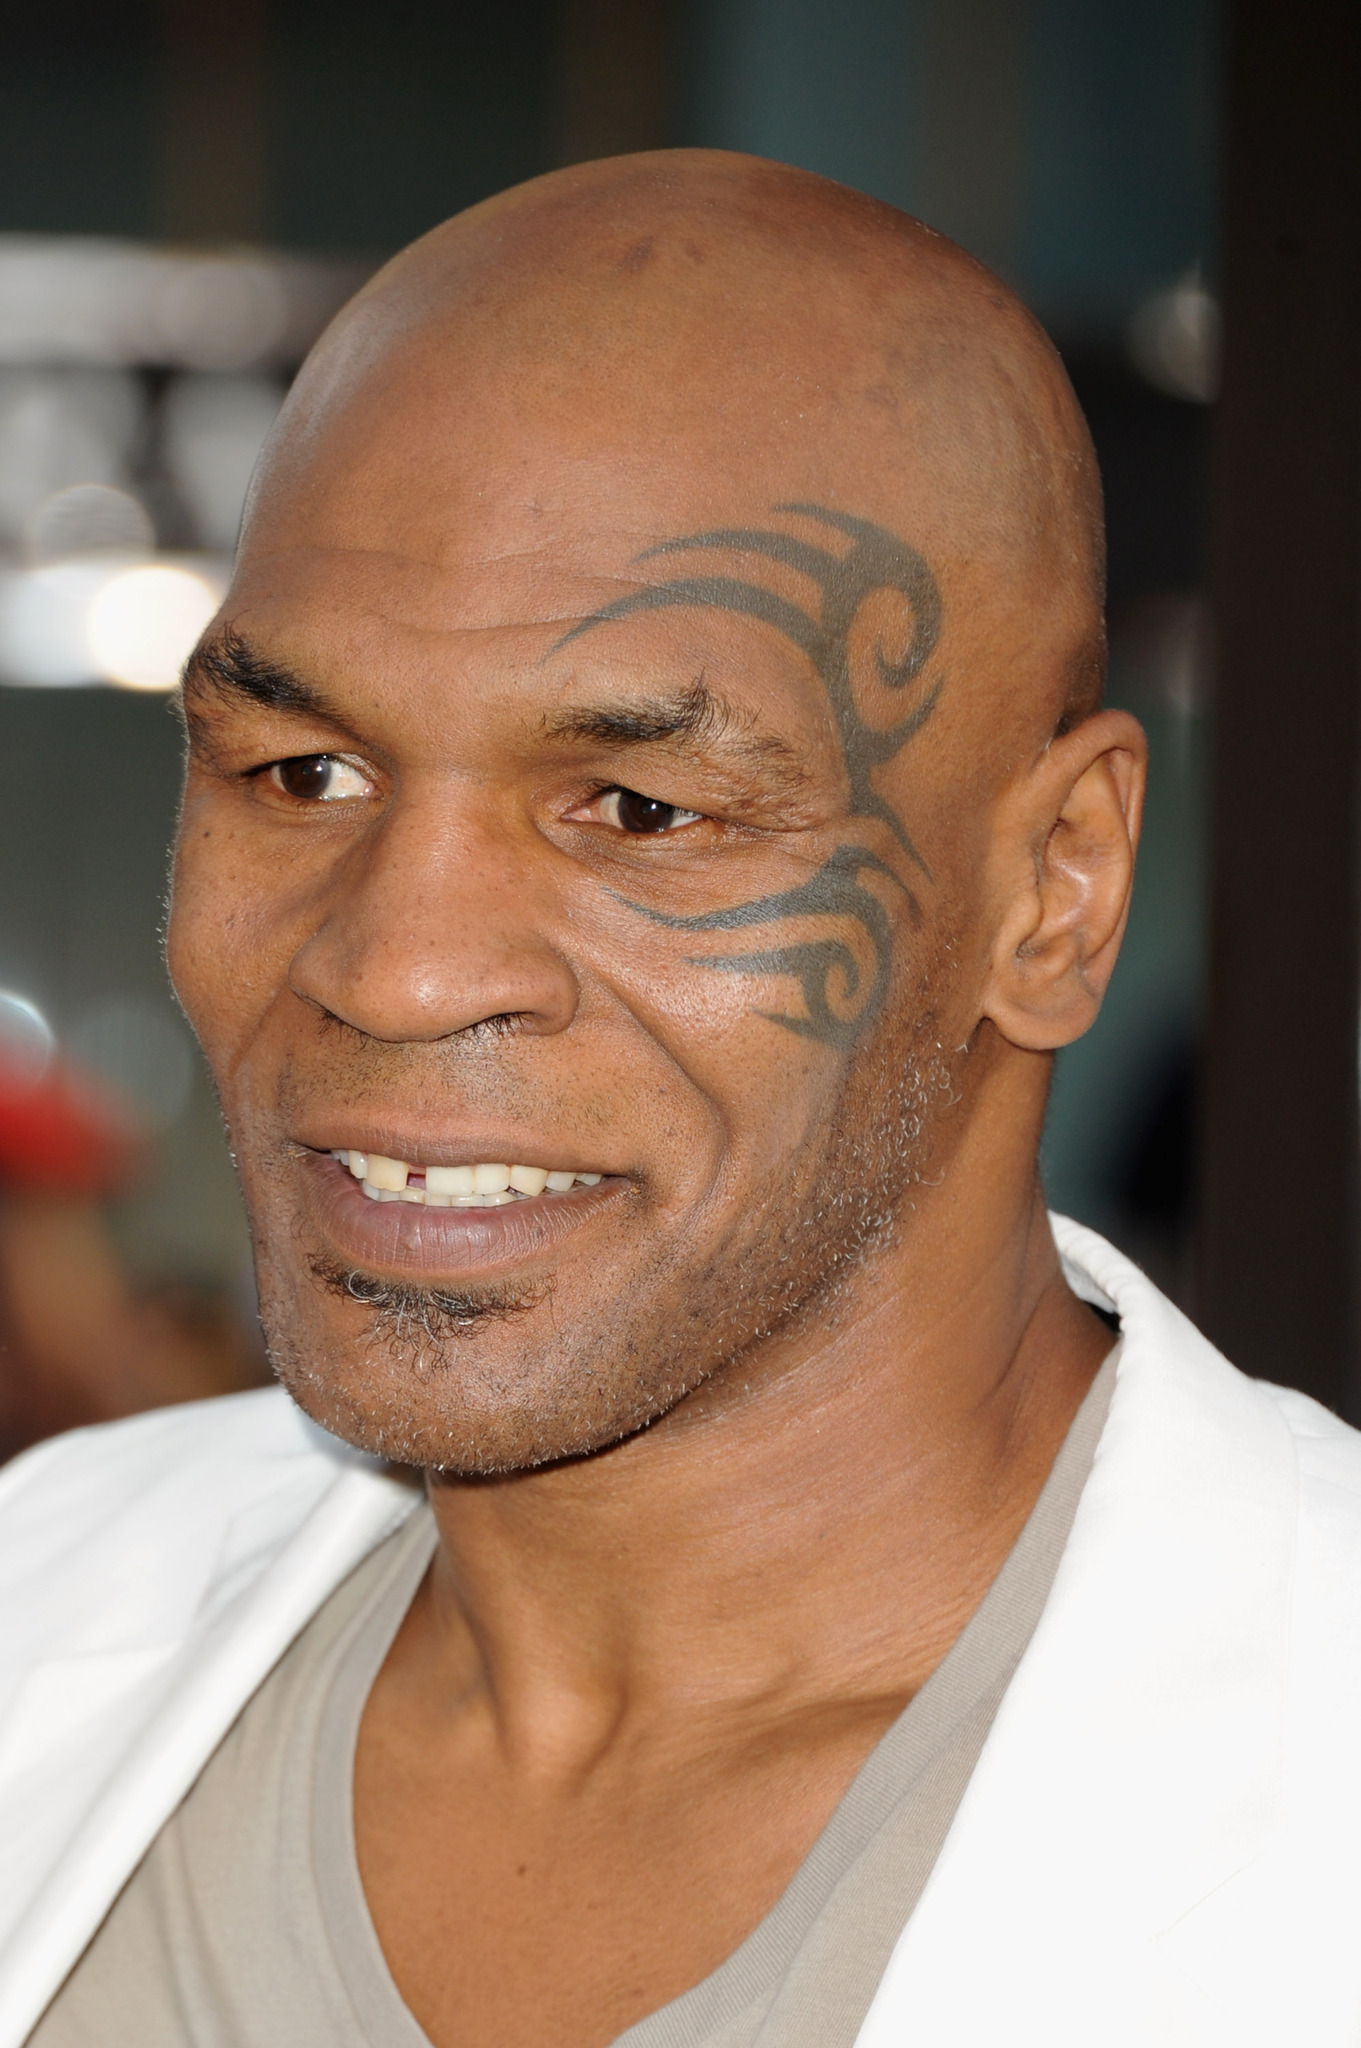 Mike Tyson at an event for The Hangover Part II (2011)